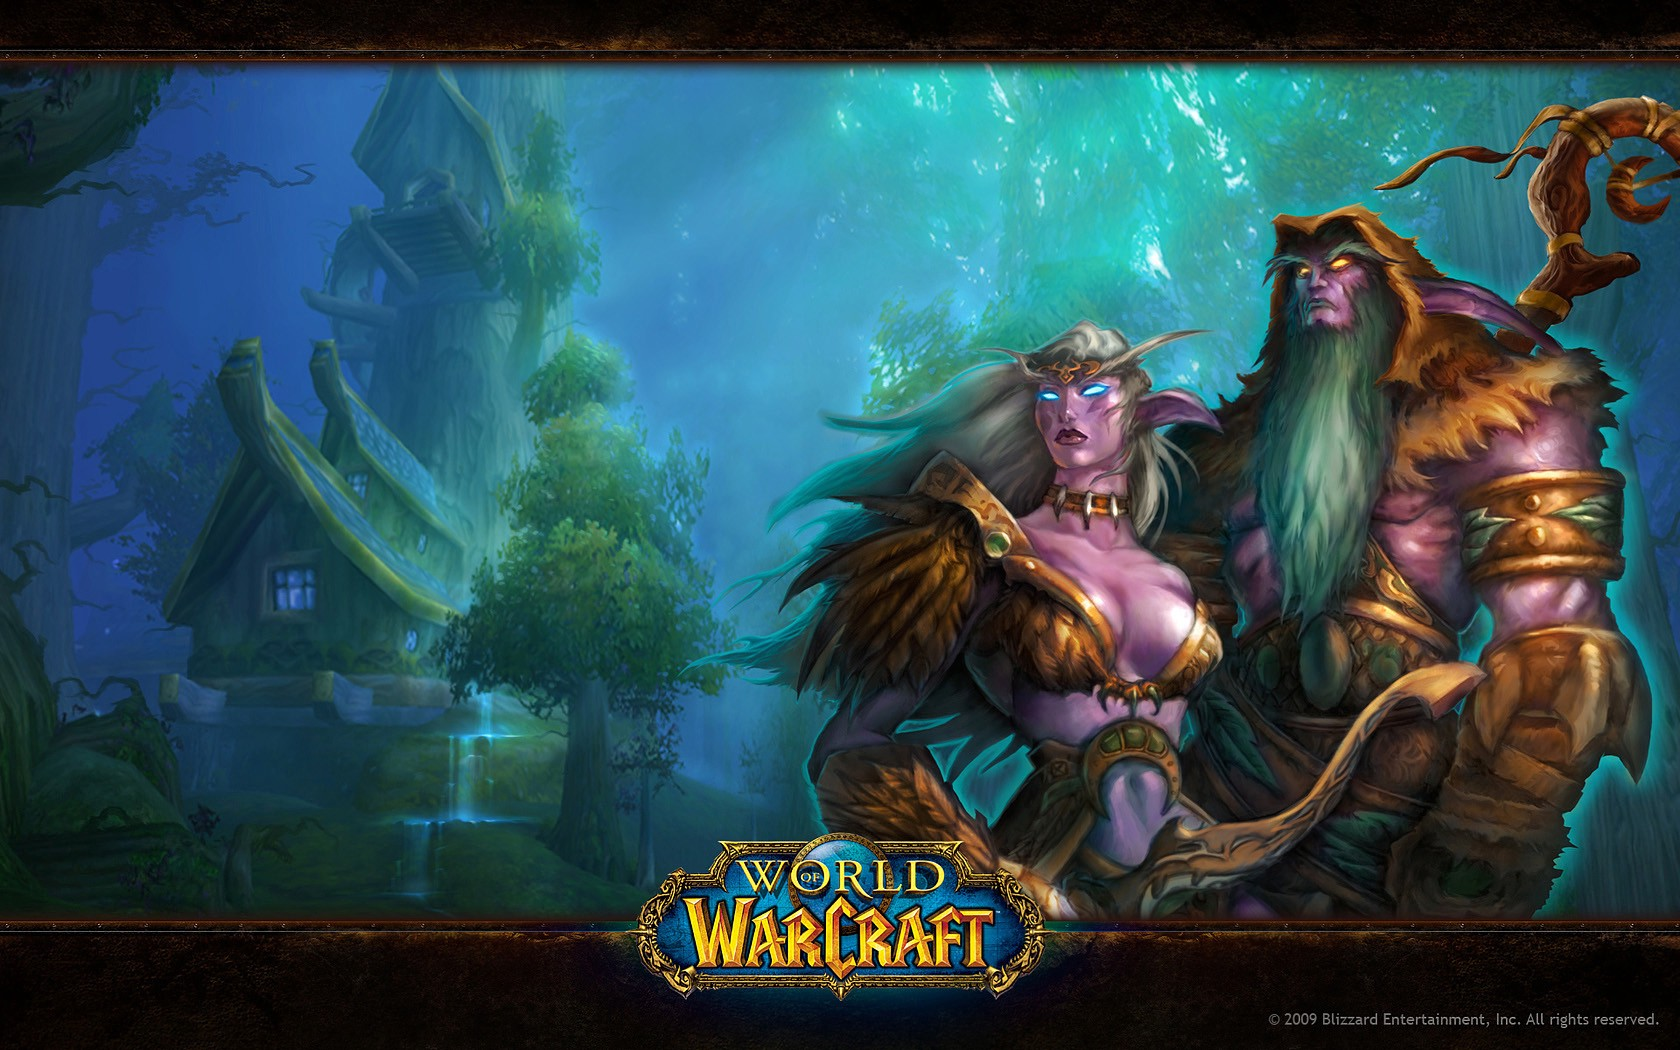 Vanilla wow prot warrior leveling guide | Warrior Leveling